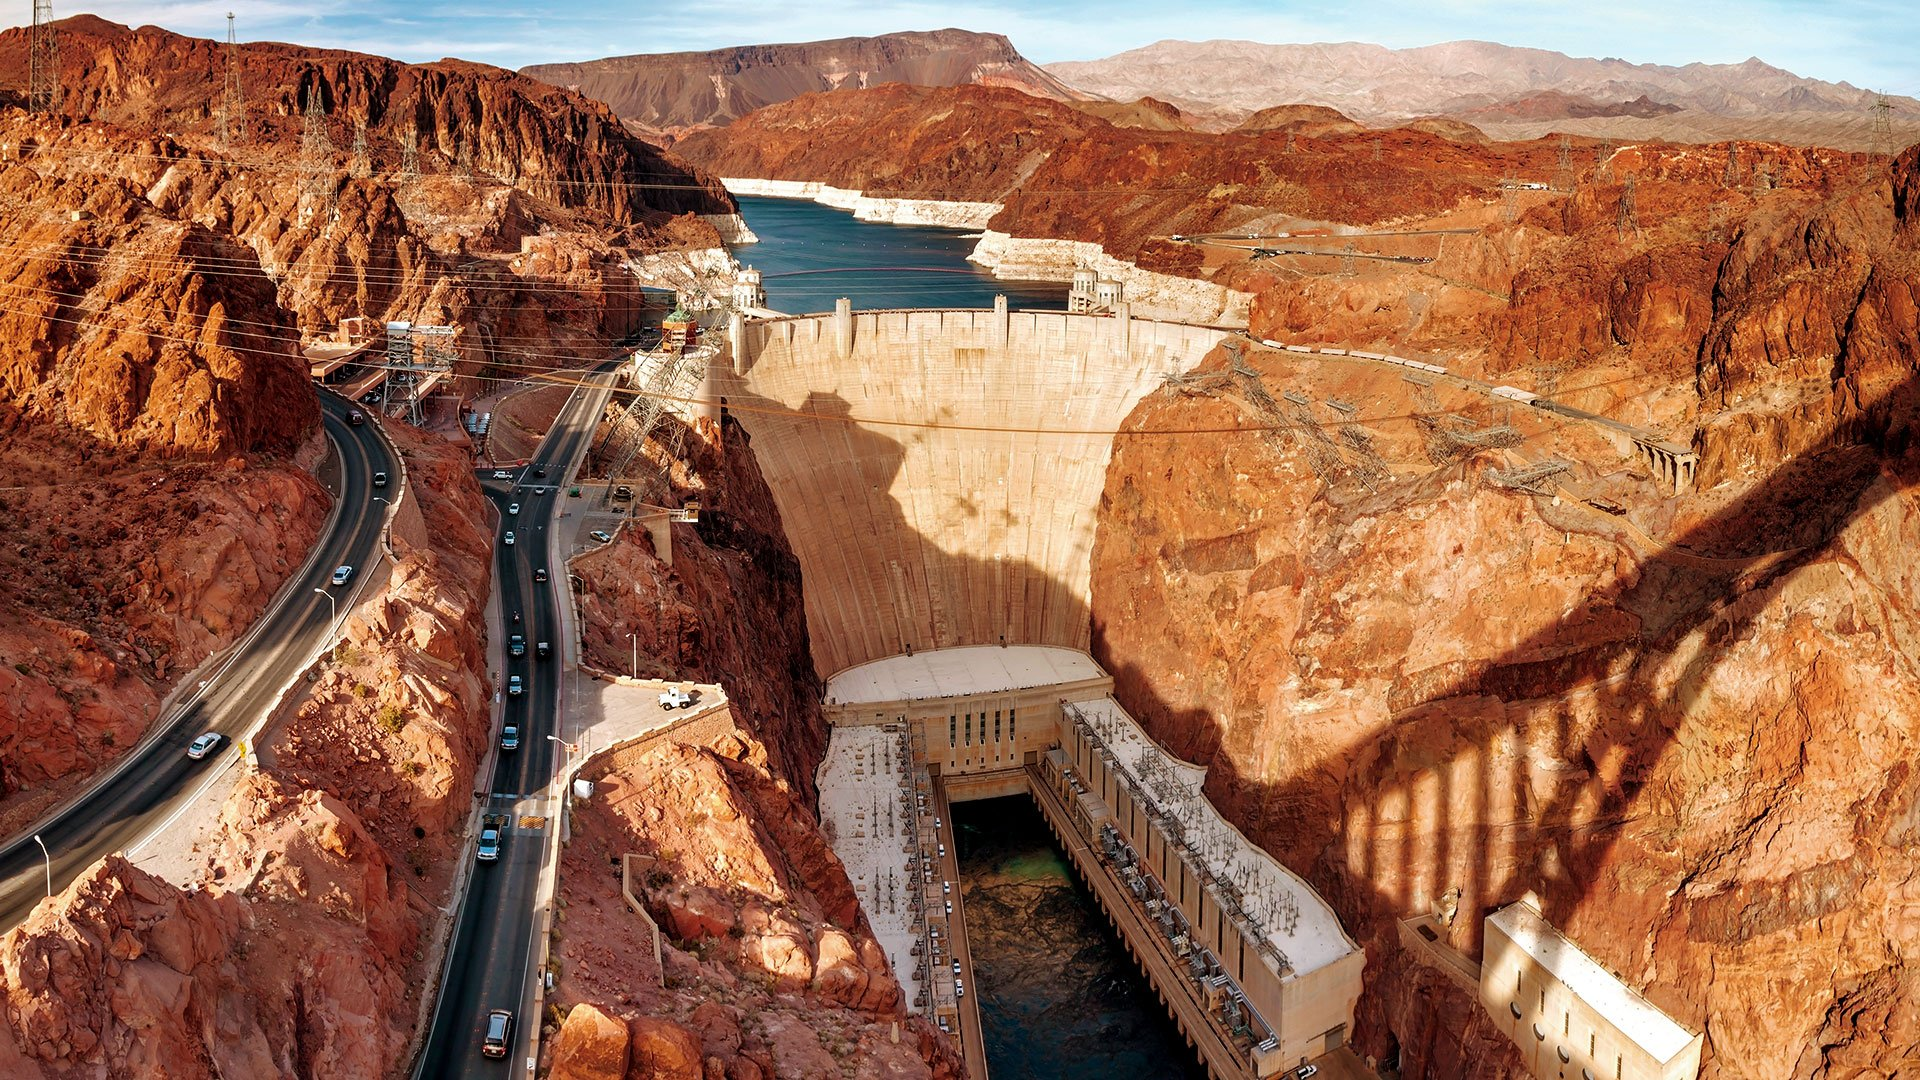 The Hoover Dam seen from the O'Callaghan-Tillman Memorial Bridge. Papillon air tours